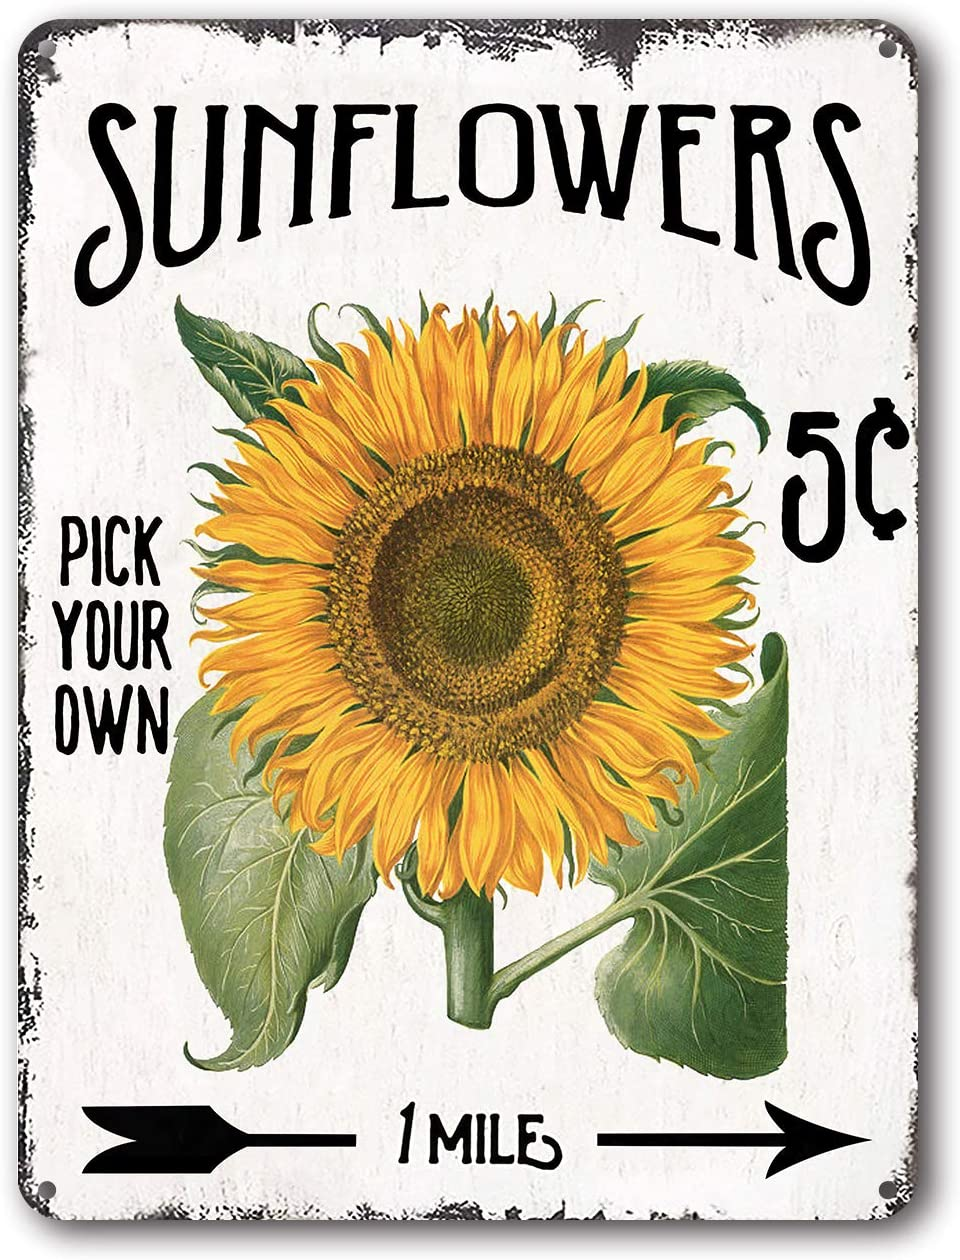 Goutoports Vintage Sunflower Tin Signs Green Oil Painting Farmhouse Home Wall Decor Metal Signs 7.9x11.8 Inch